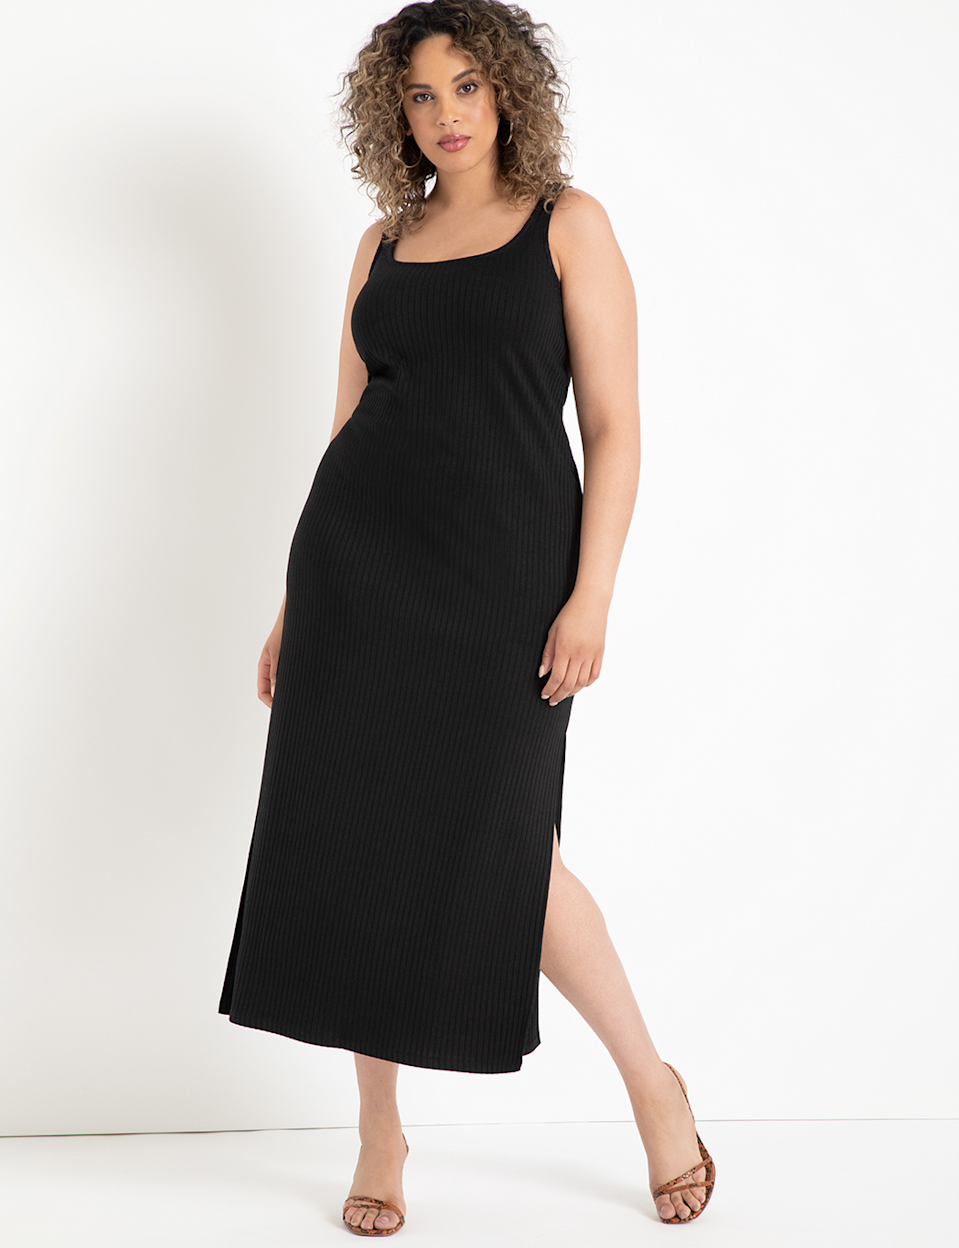 """This is what I like to call a """"going out"""" nightgown because it <em>feels</em> like pajamas, but <em>looks</em> like a million bucks. <br><br><strong>Eloquii</strong> Ribbed Tank Maxi Dress, $, available at <a href=""""https://go.skimresources.com/?id=30283X879131&url=https%3A%2F%2Fwww.eloquii.com%2Fribbed-tank-maxi-dress%2F1227127.html%3Fdwvar_1227127_colorCode%3D100"""" rel=""""nofollow noopener"""" target=""""_blank"""" data-ylk=""""slk:Eloquii"""" class=""""link rapid-noclick-resp"""">Eloquii</a>"""